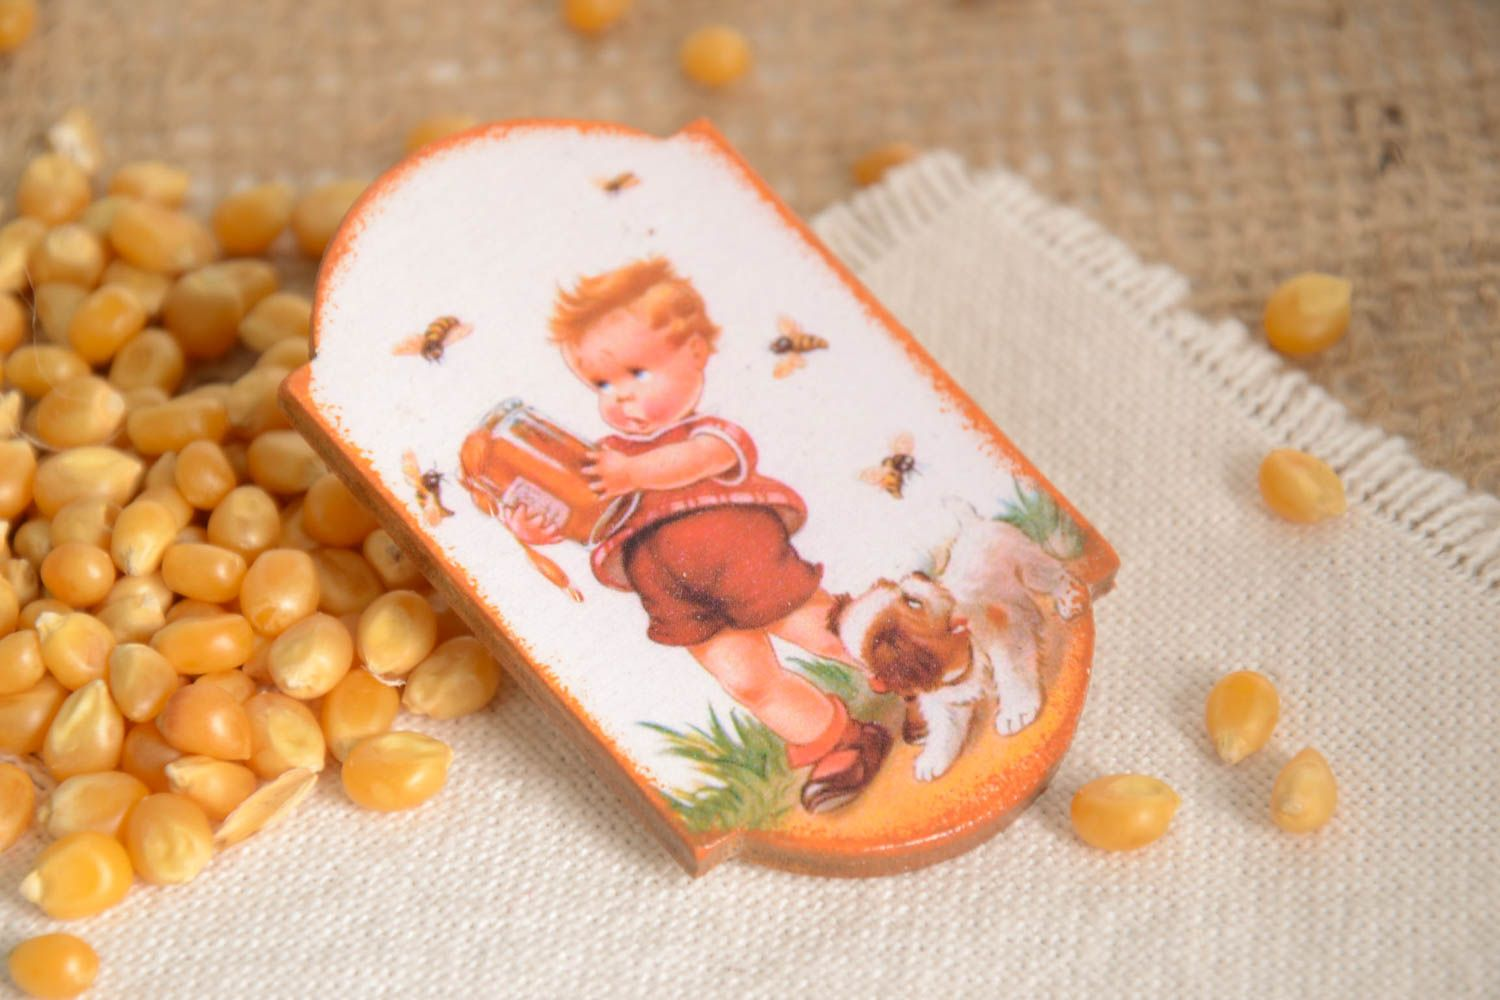 Unusual handmade magnet cool fridge magnets kitchen supplies decorative use only photo 1